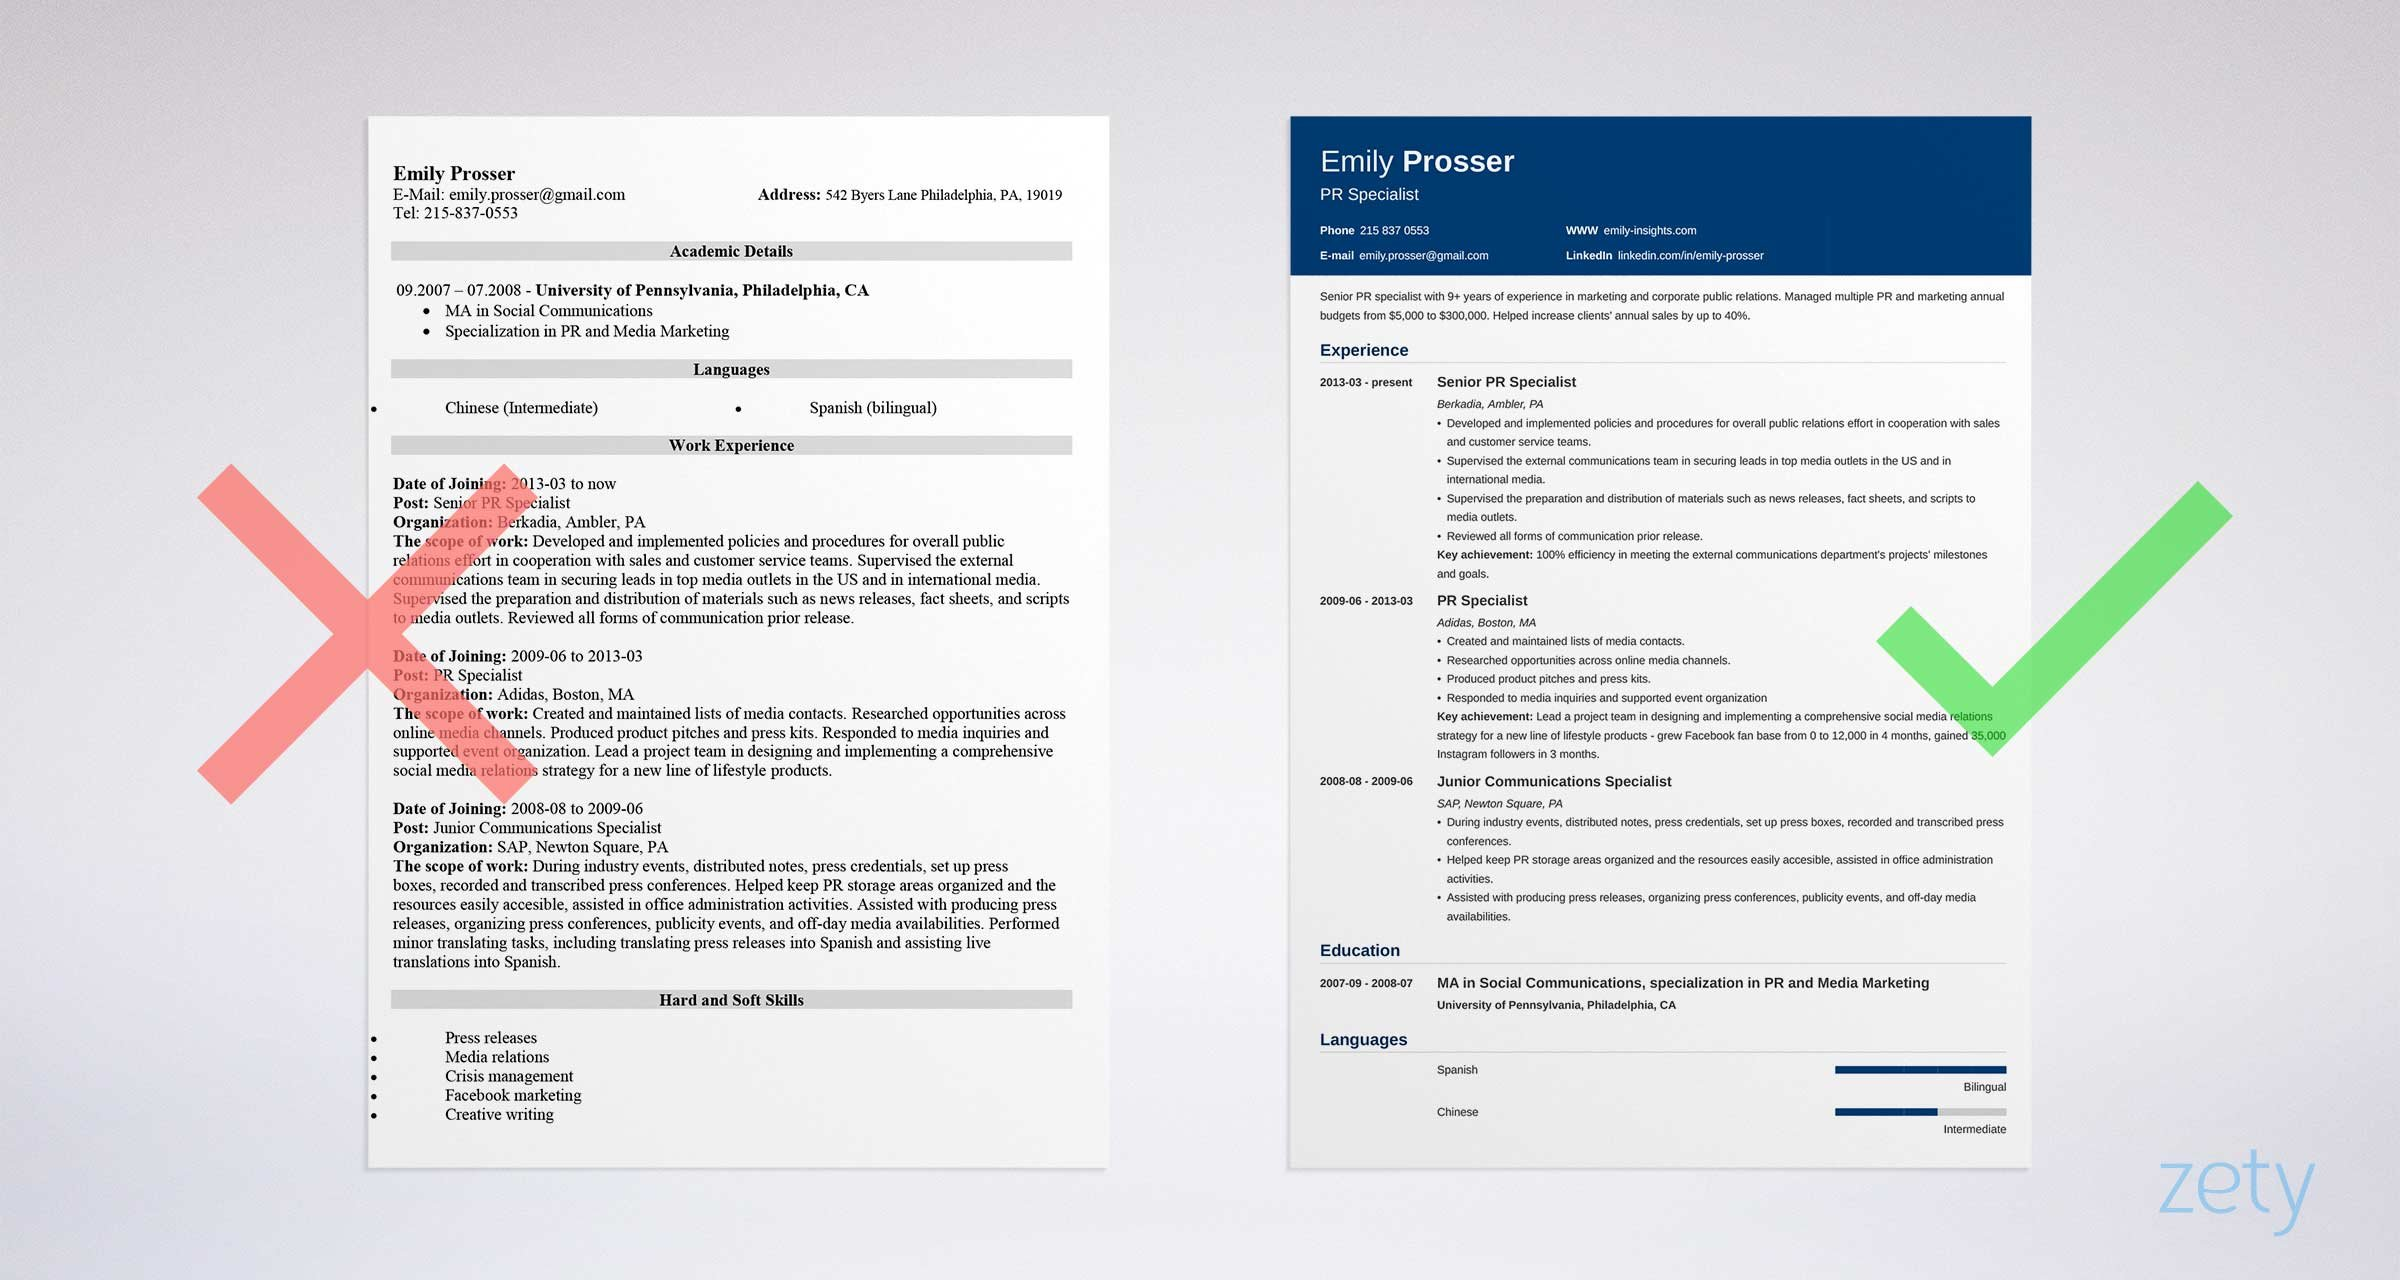 free google docs resume templates drive alternatives making on high school for college Resume Making A Resume On Google Docs